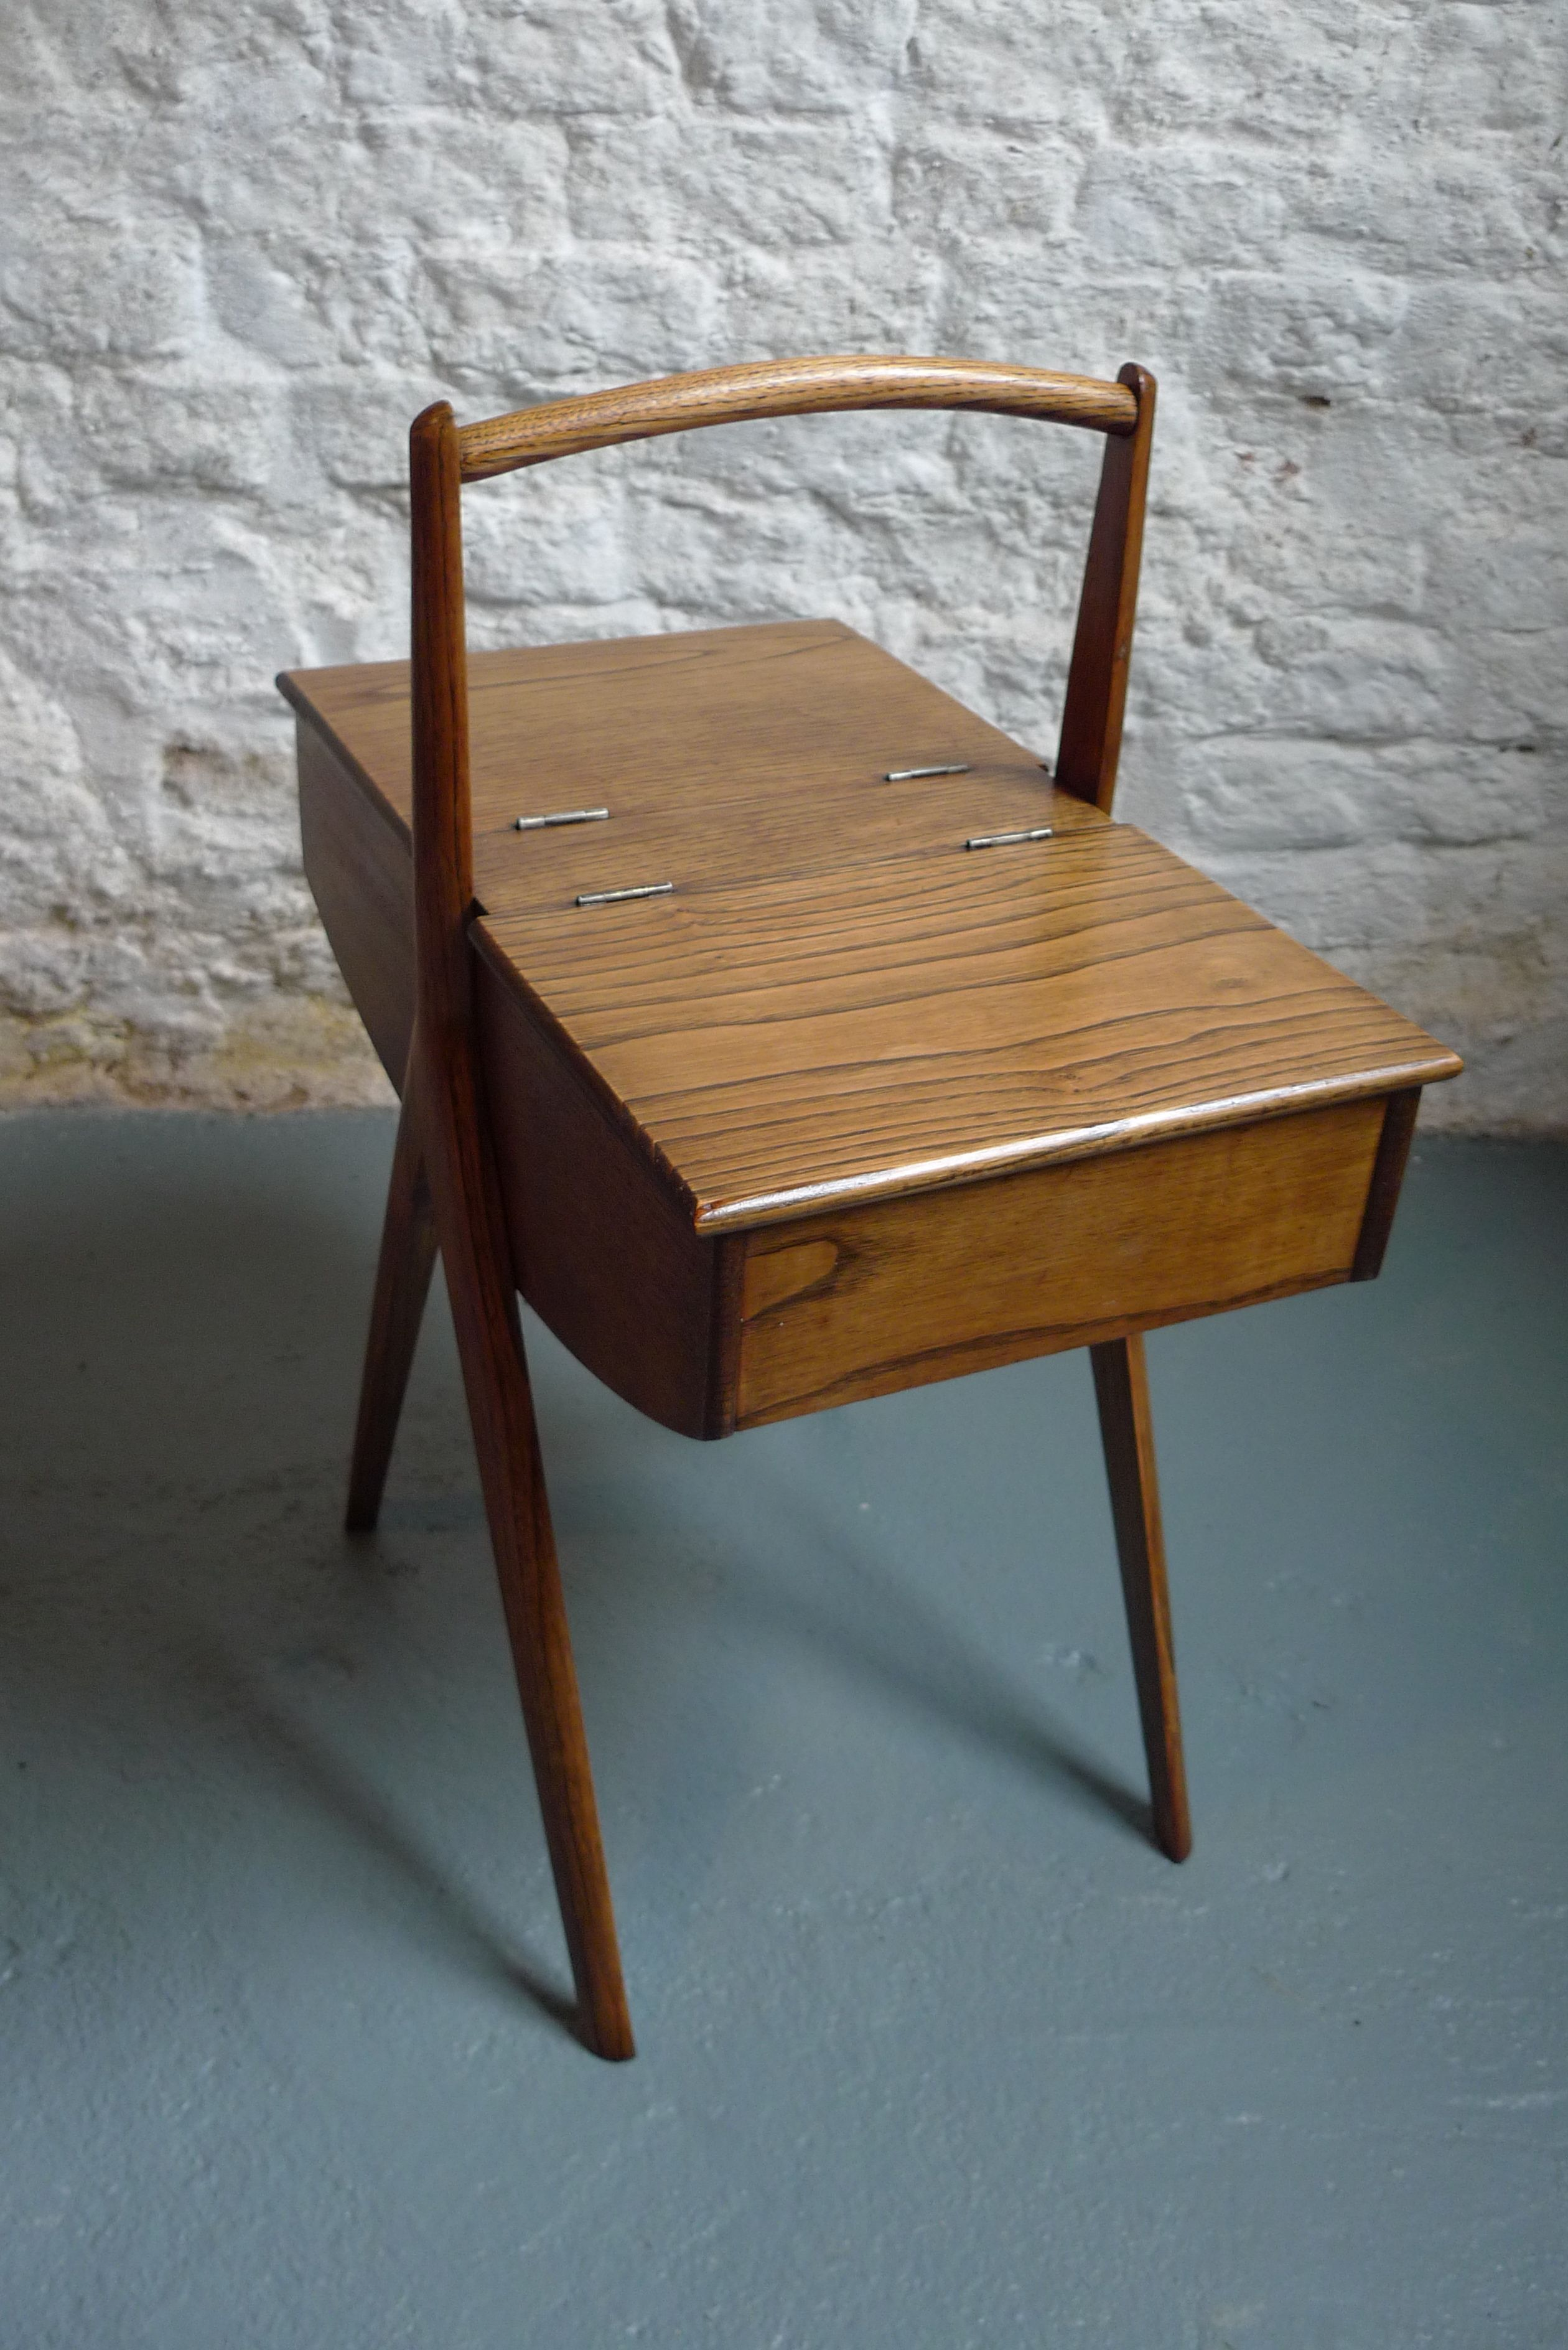 50 s Sewing Craft Box Side Table with scissor legs and hinged